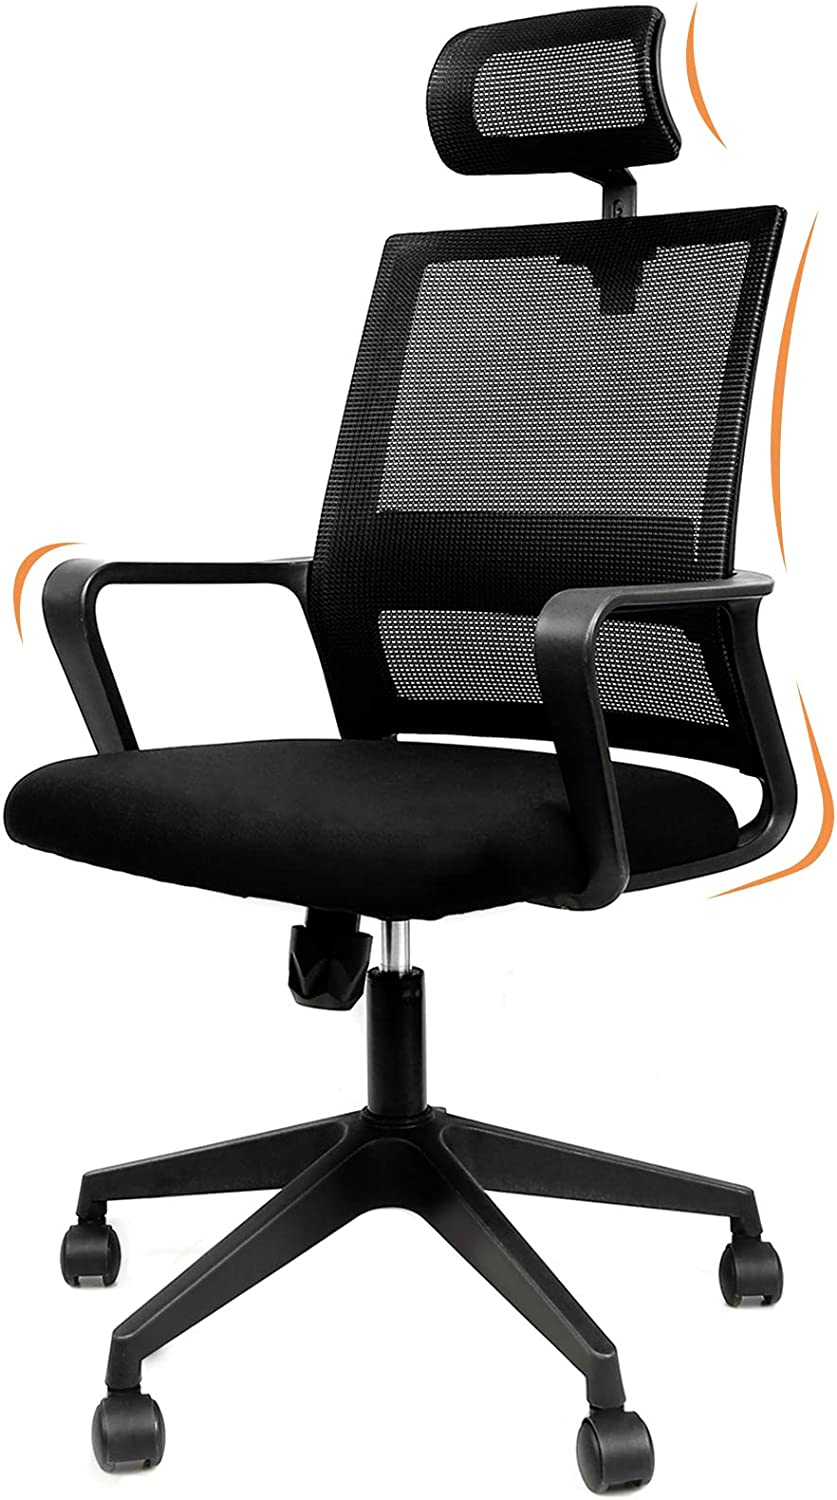 Home Office Chair Mesh, Mid Back Office Chair with Armrests Headrest Height Adjustable Ergonomic Desk Chair Lumbar Support Computer Chair BIFMA Certified